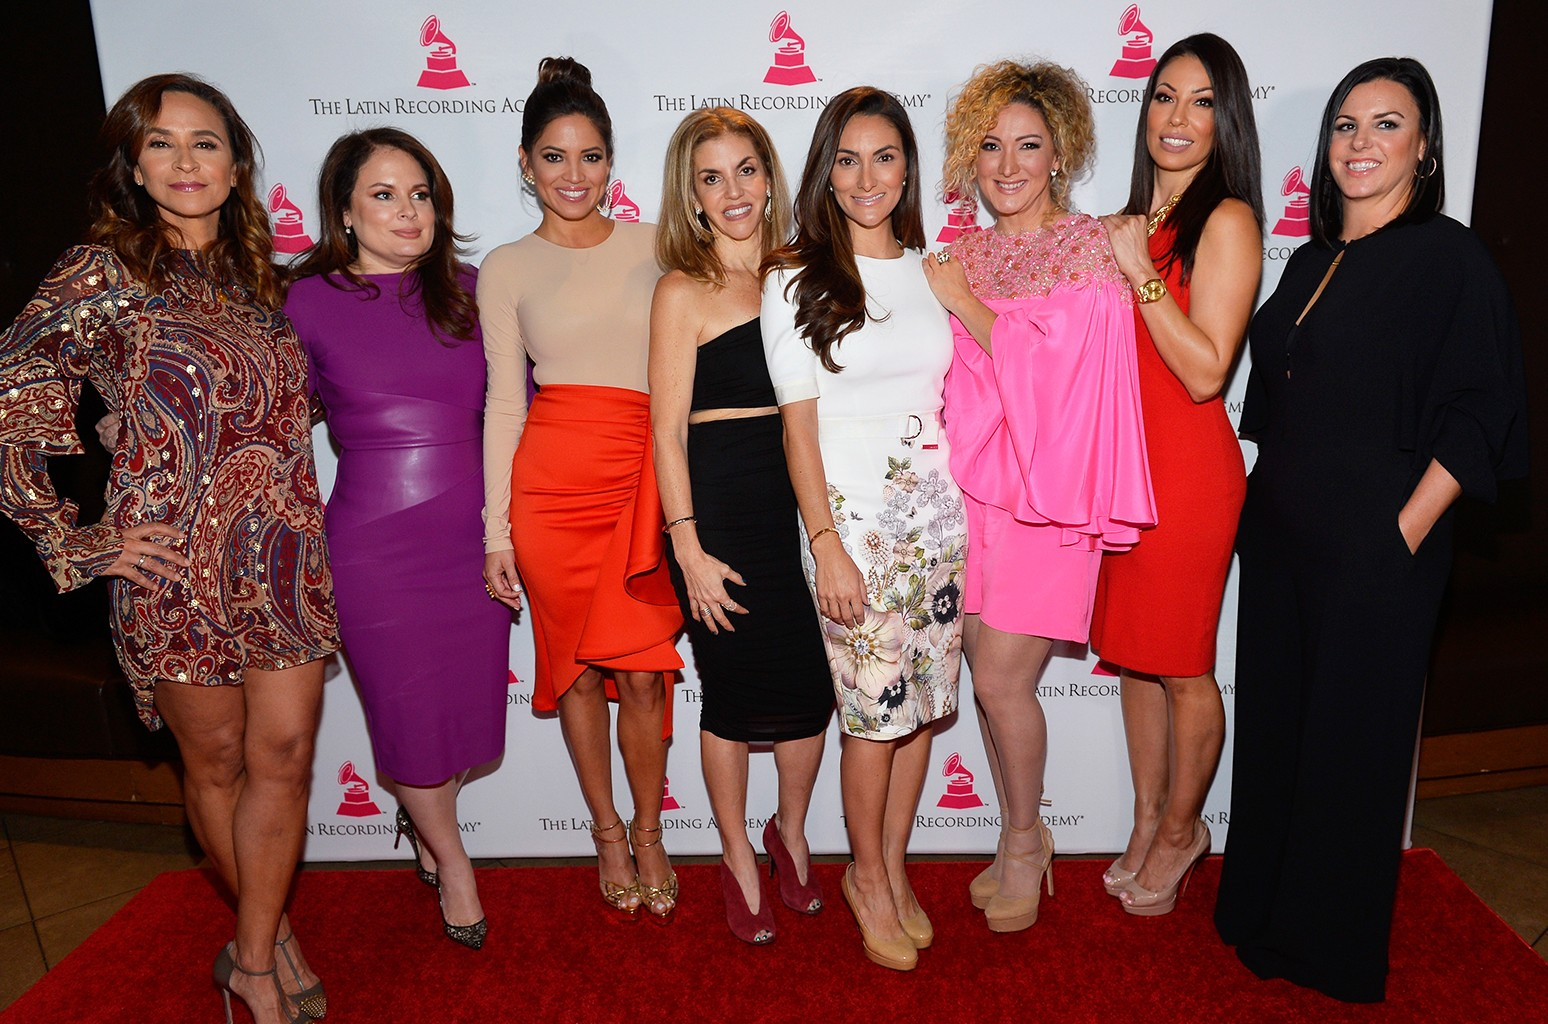 Latin Grammy Week Honors Women in Entertainment, Including